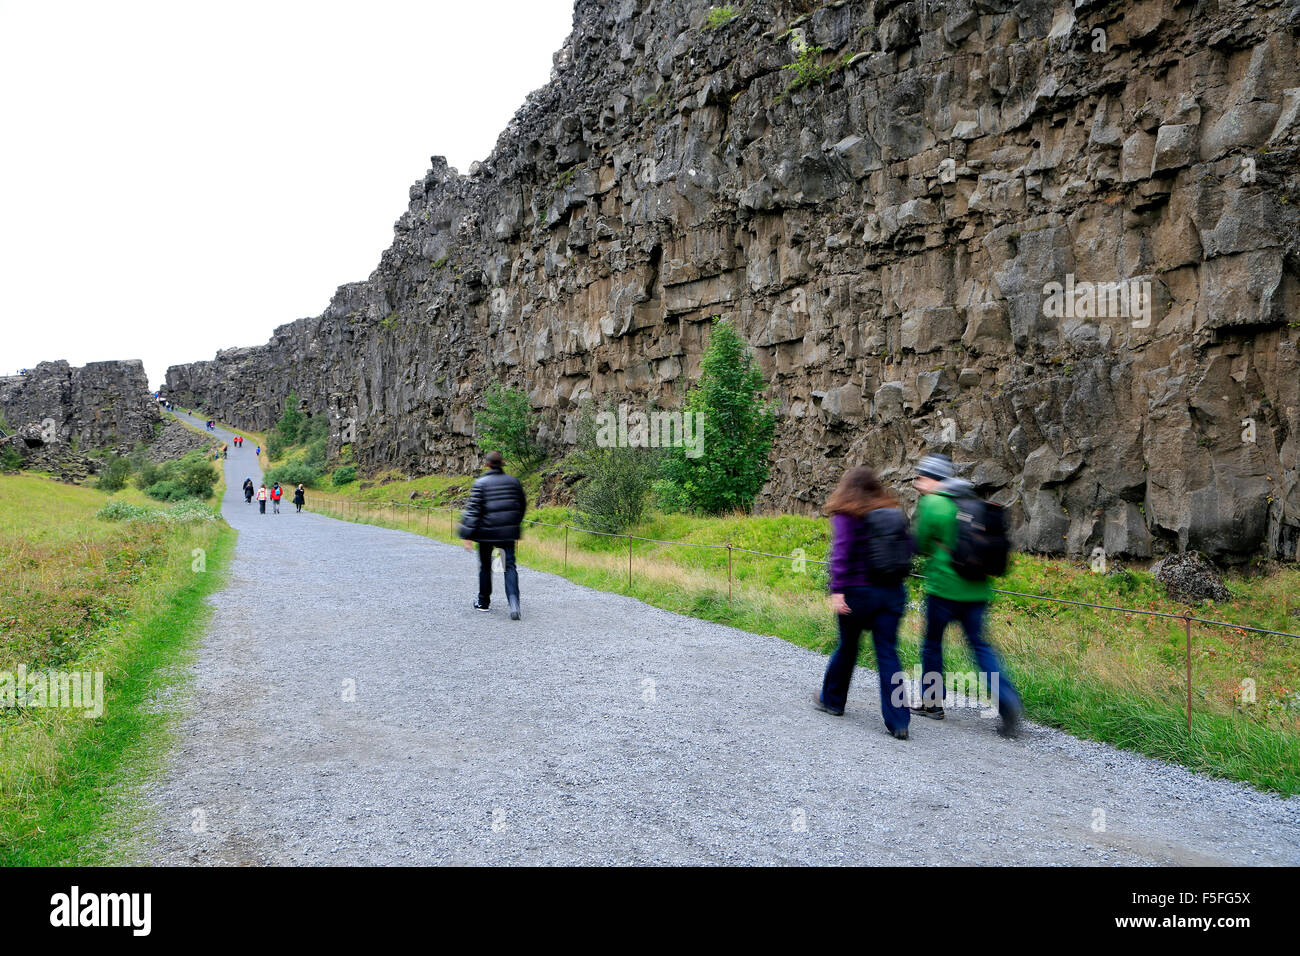 People on trail by volcanic rock walls (Eurasian and North-American  tectonic plates collide), Thingvellir National Park, Iceland 7ad9a7bb8ce8